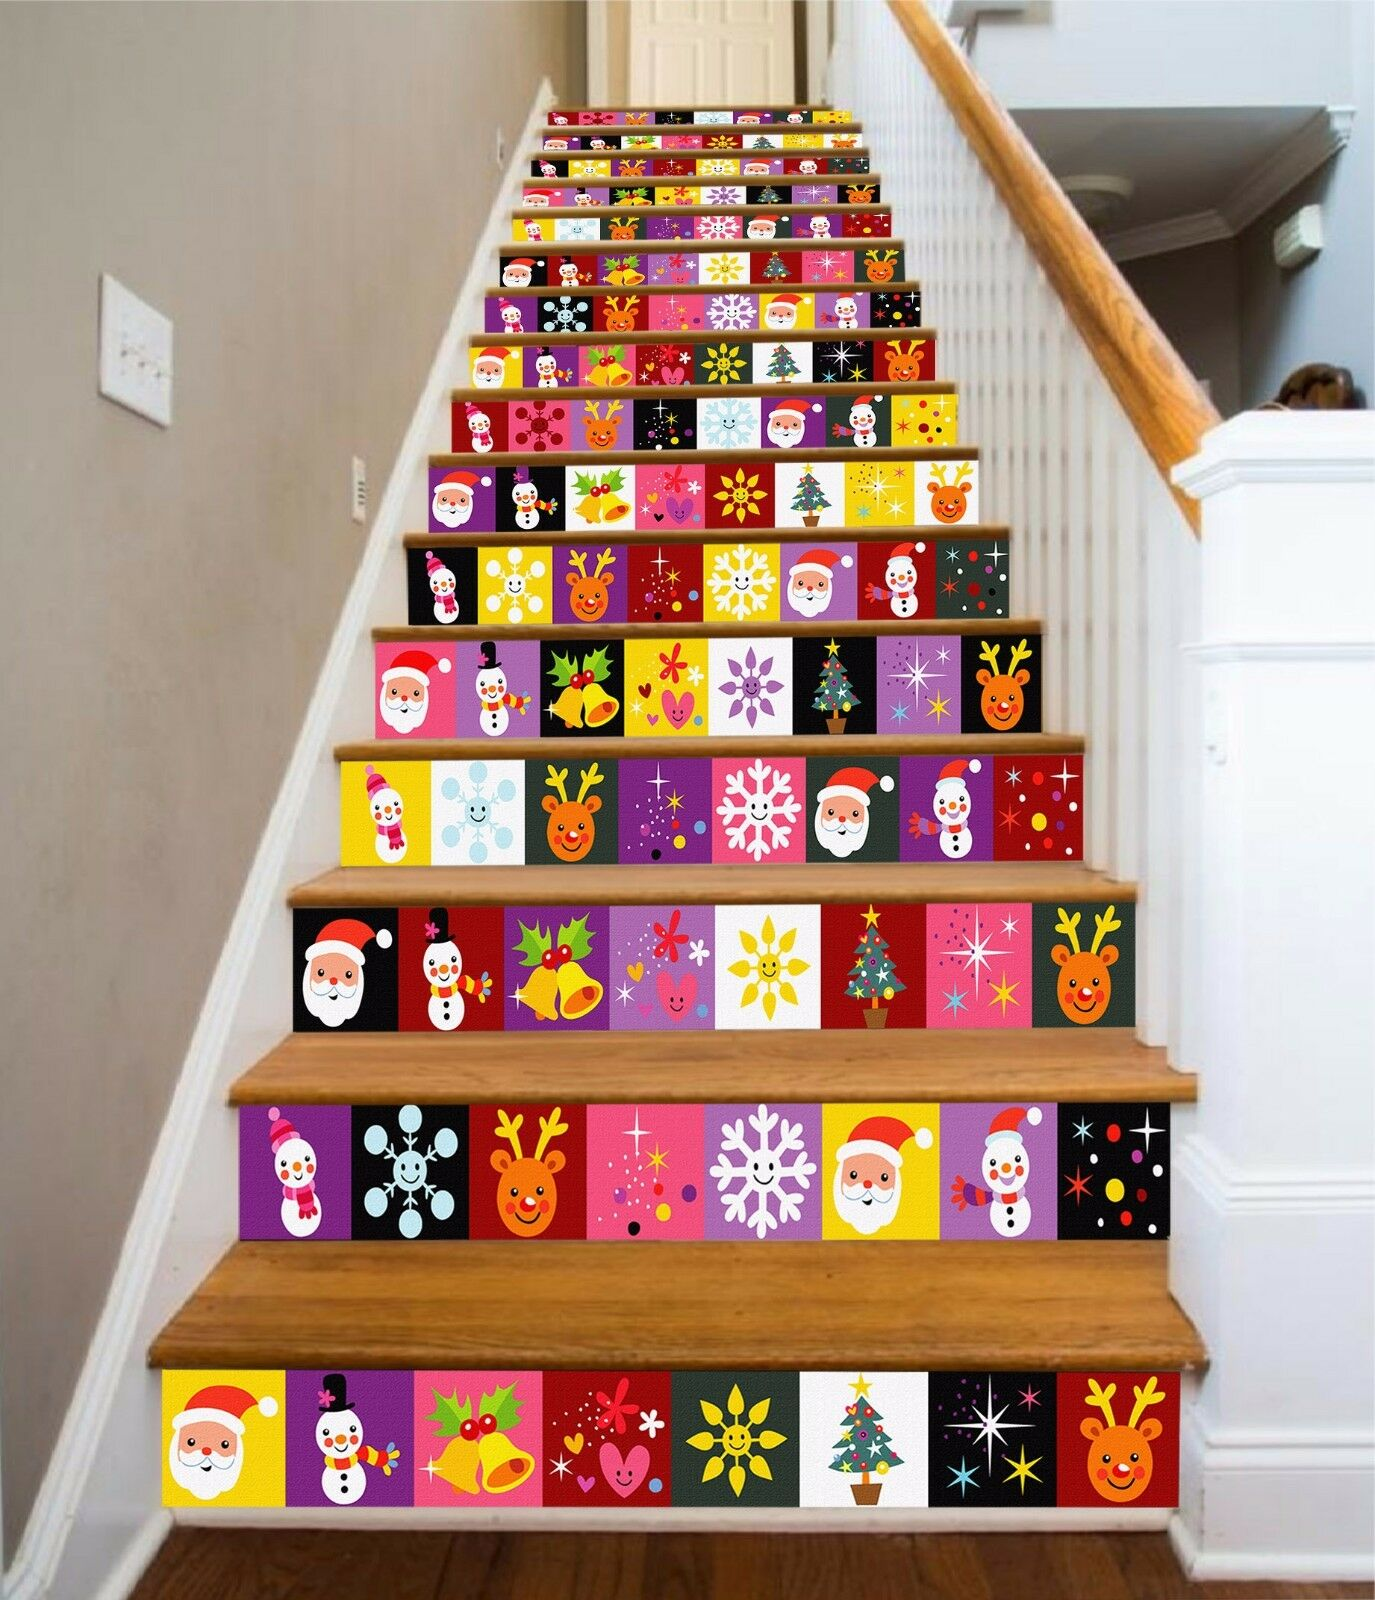 3D Cartoon 63 Stair Risers Decoration Photo Mural Vinyl Decal Wallpaper AU Lemon